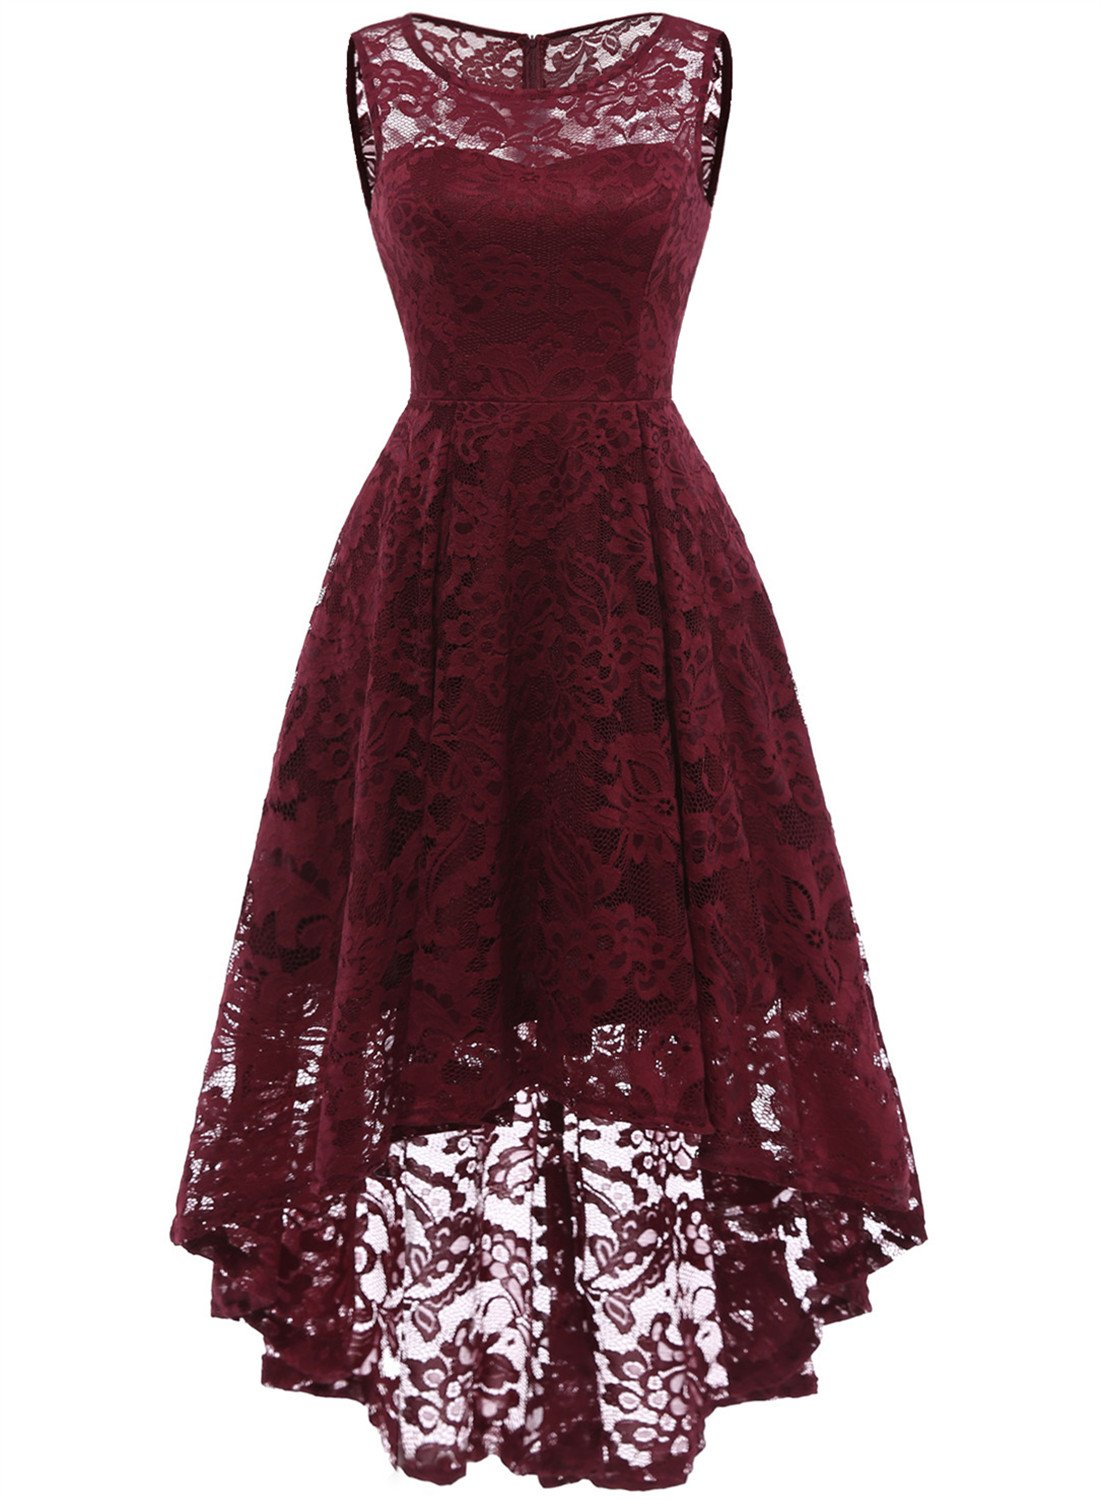 MUADRESS 6006 Women's Vintage Floral Lace Sleeveless Hi-Lo Cocktail Formal Swing Dress Burgundy 2XL